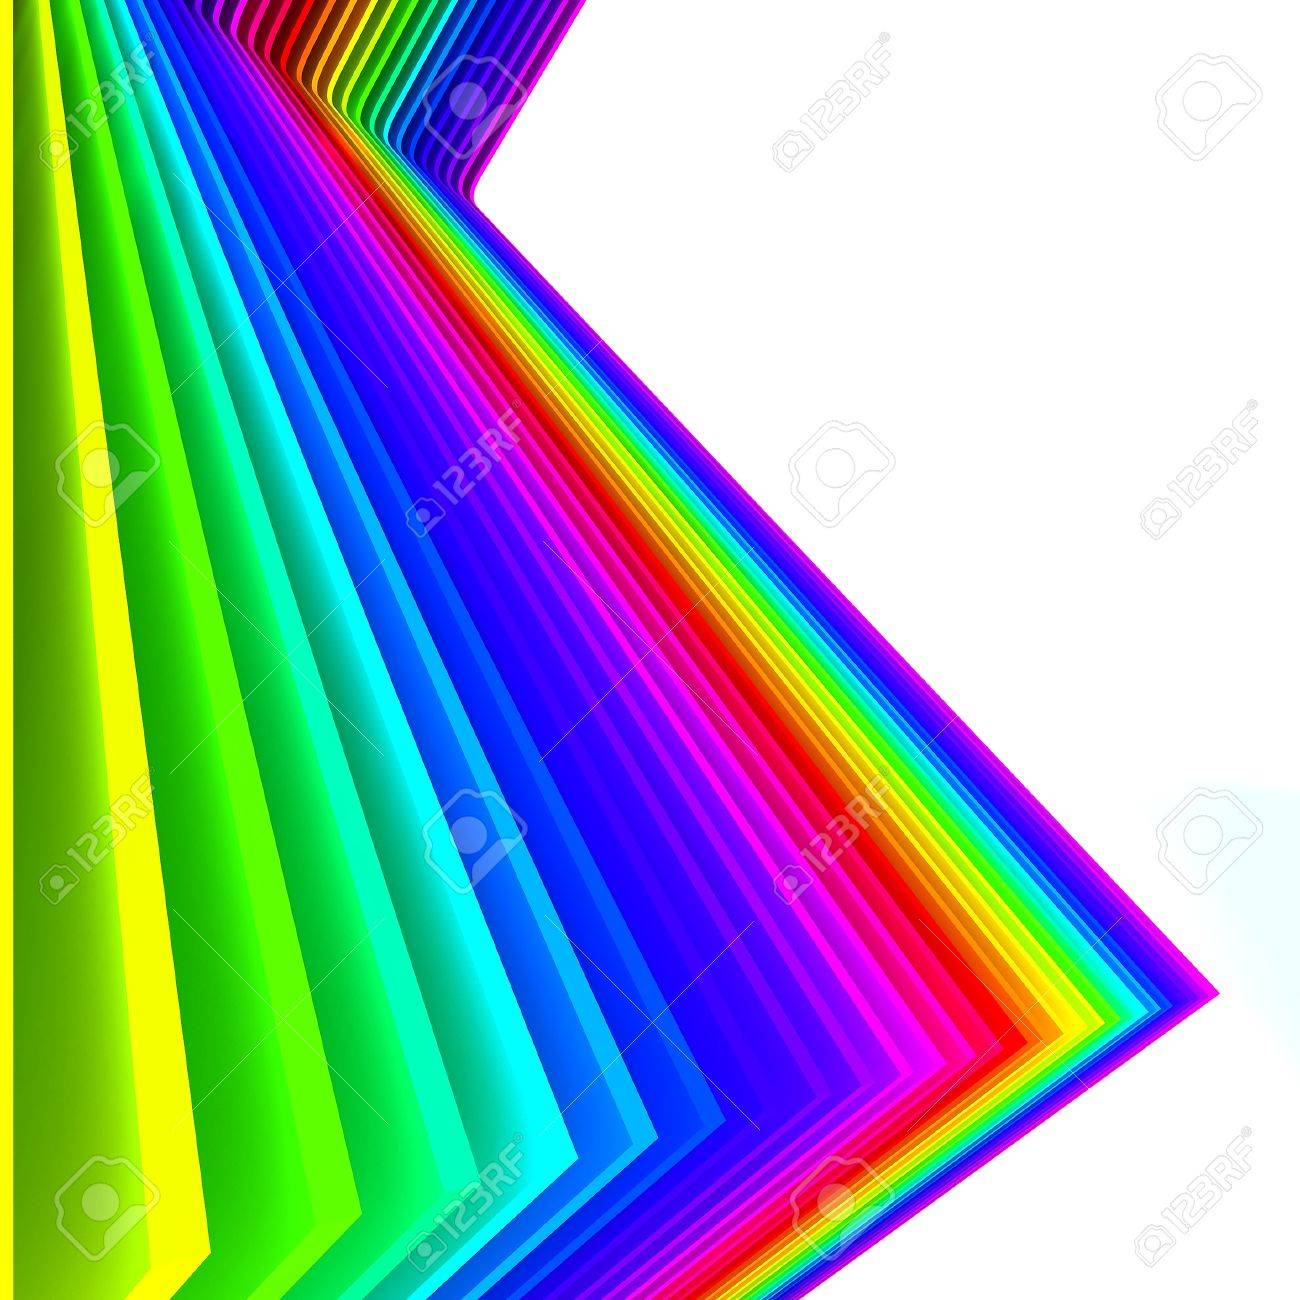 Colorful abstract lines for background Stock Photo - 14622940